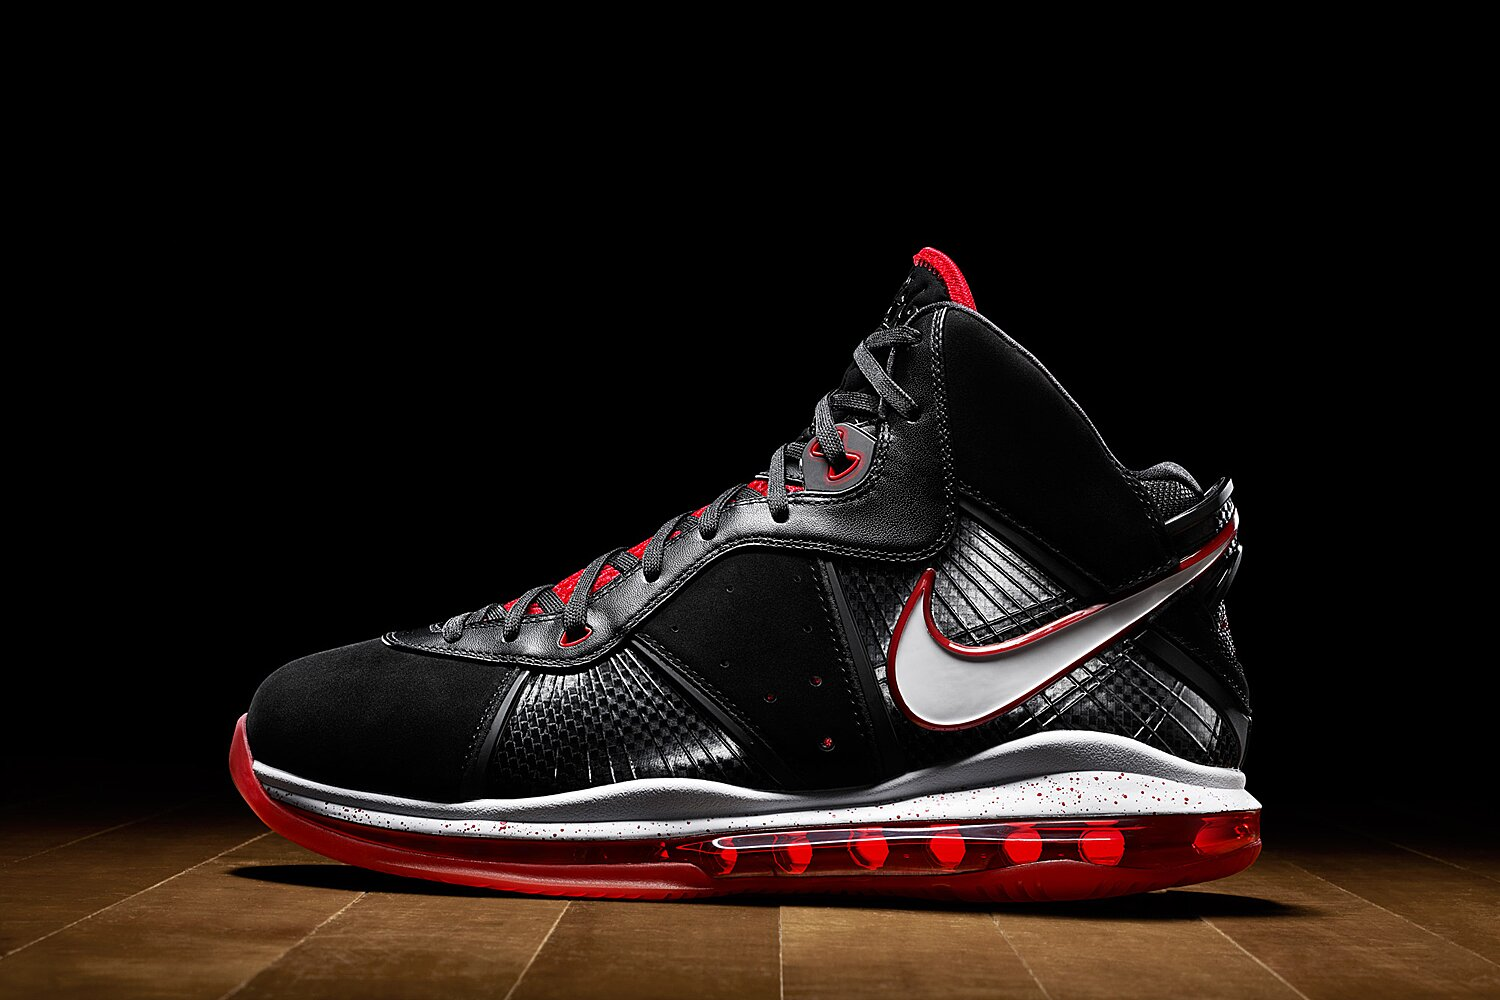 buy online 05b66 f0390 LeBron James Signature Sneakers  Ranking the Best of the King   SI.com